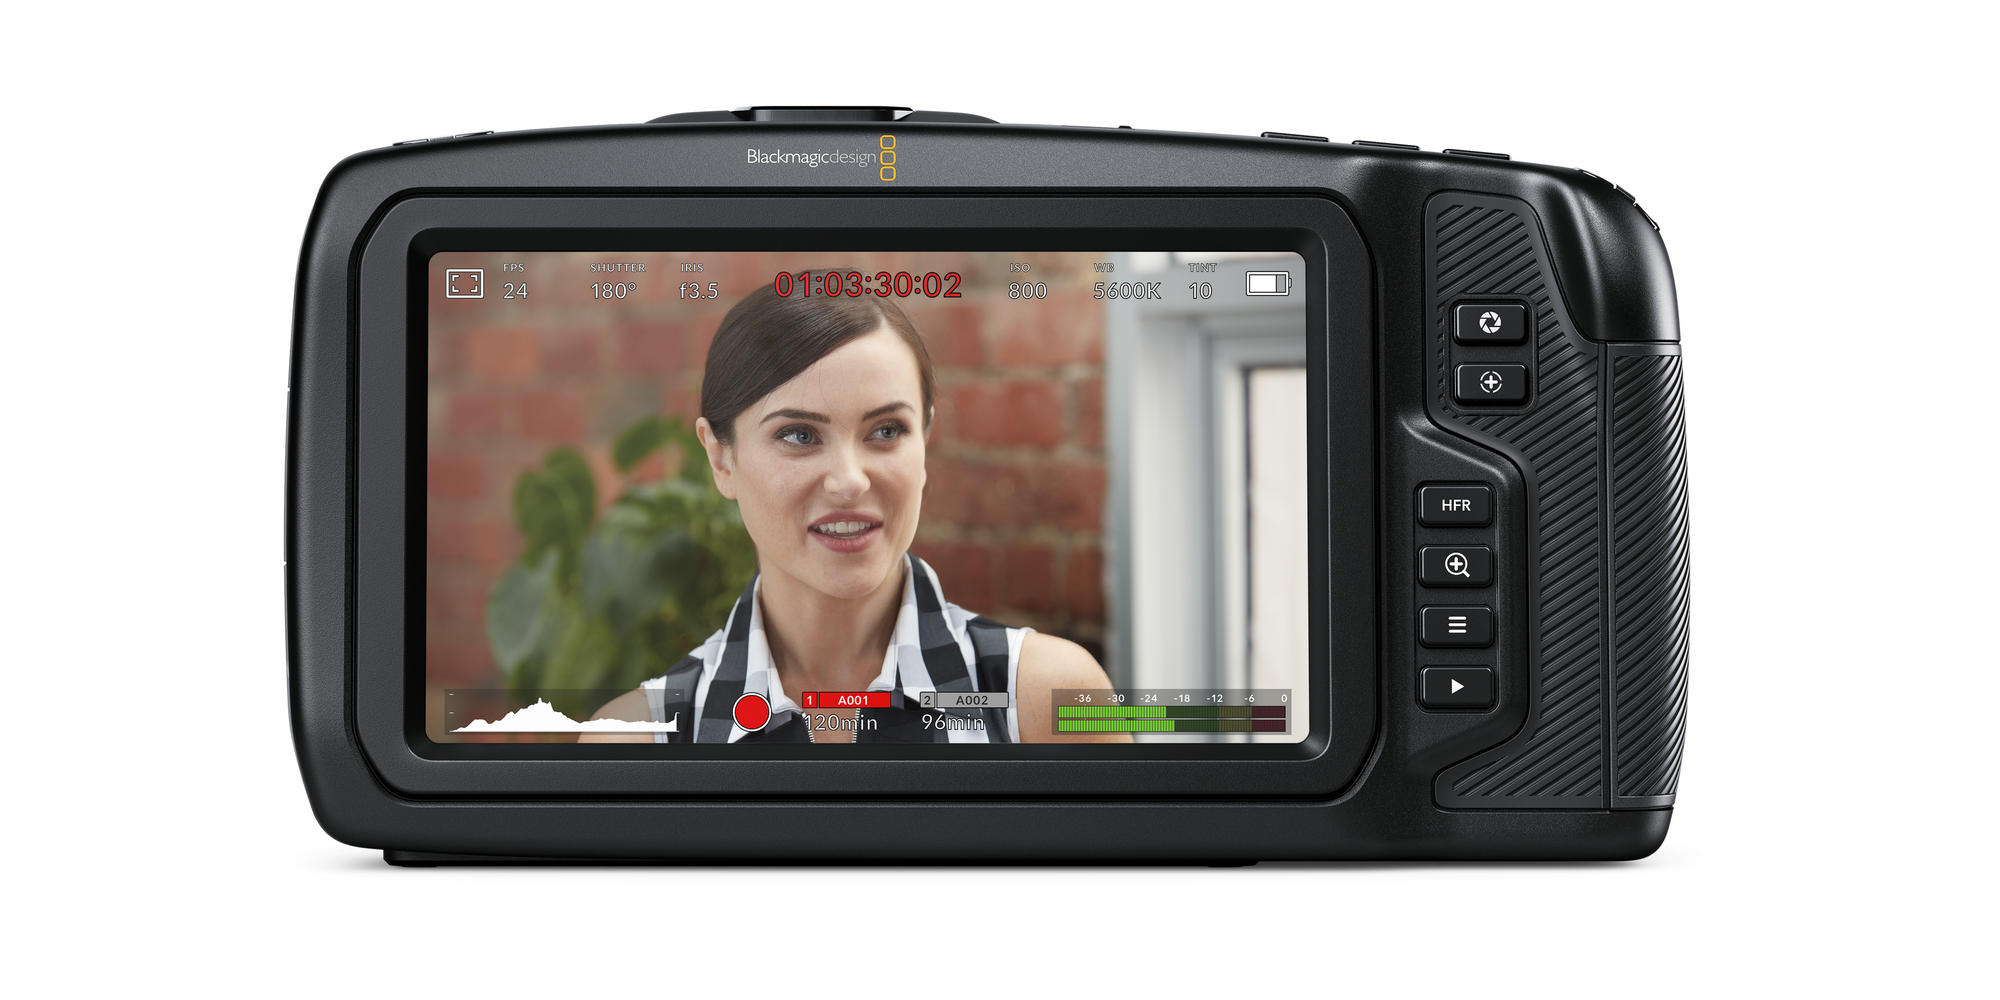 blackmagic-design-pocket-cinema-camera-4k-1